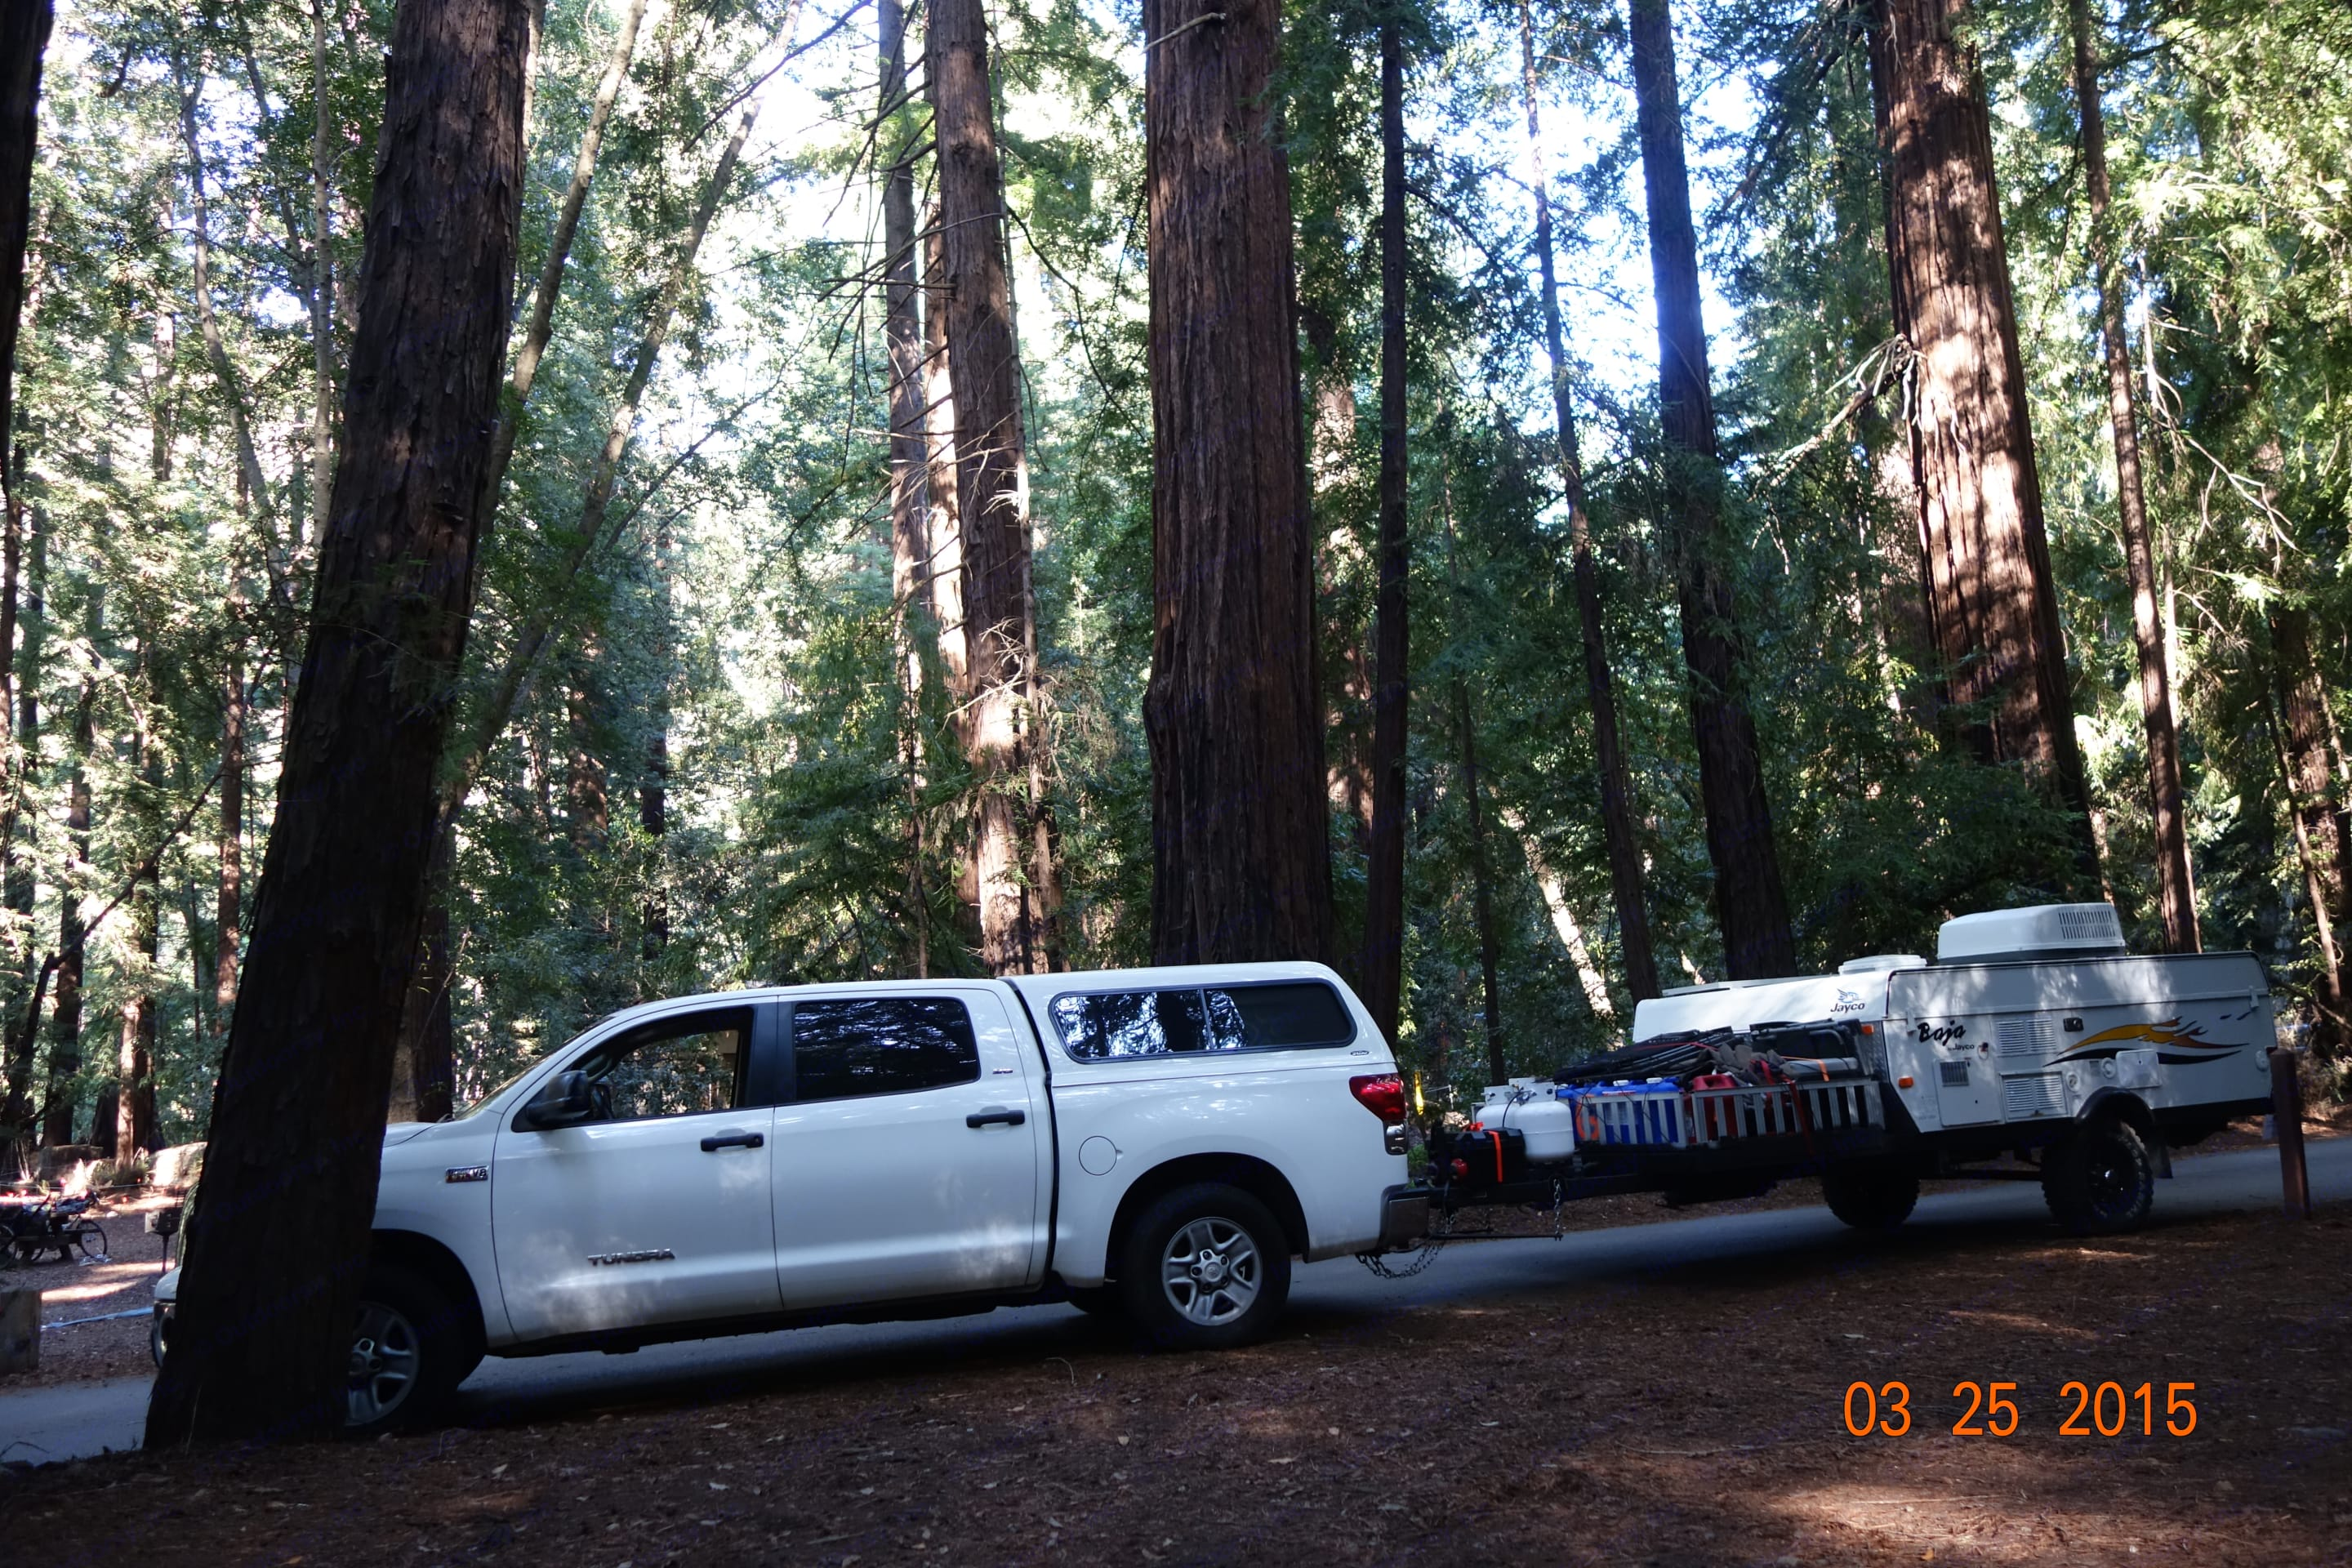 Pulling up to our site in Pfeiffer Big Sur State Park. jayco baja 10 y 2006